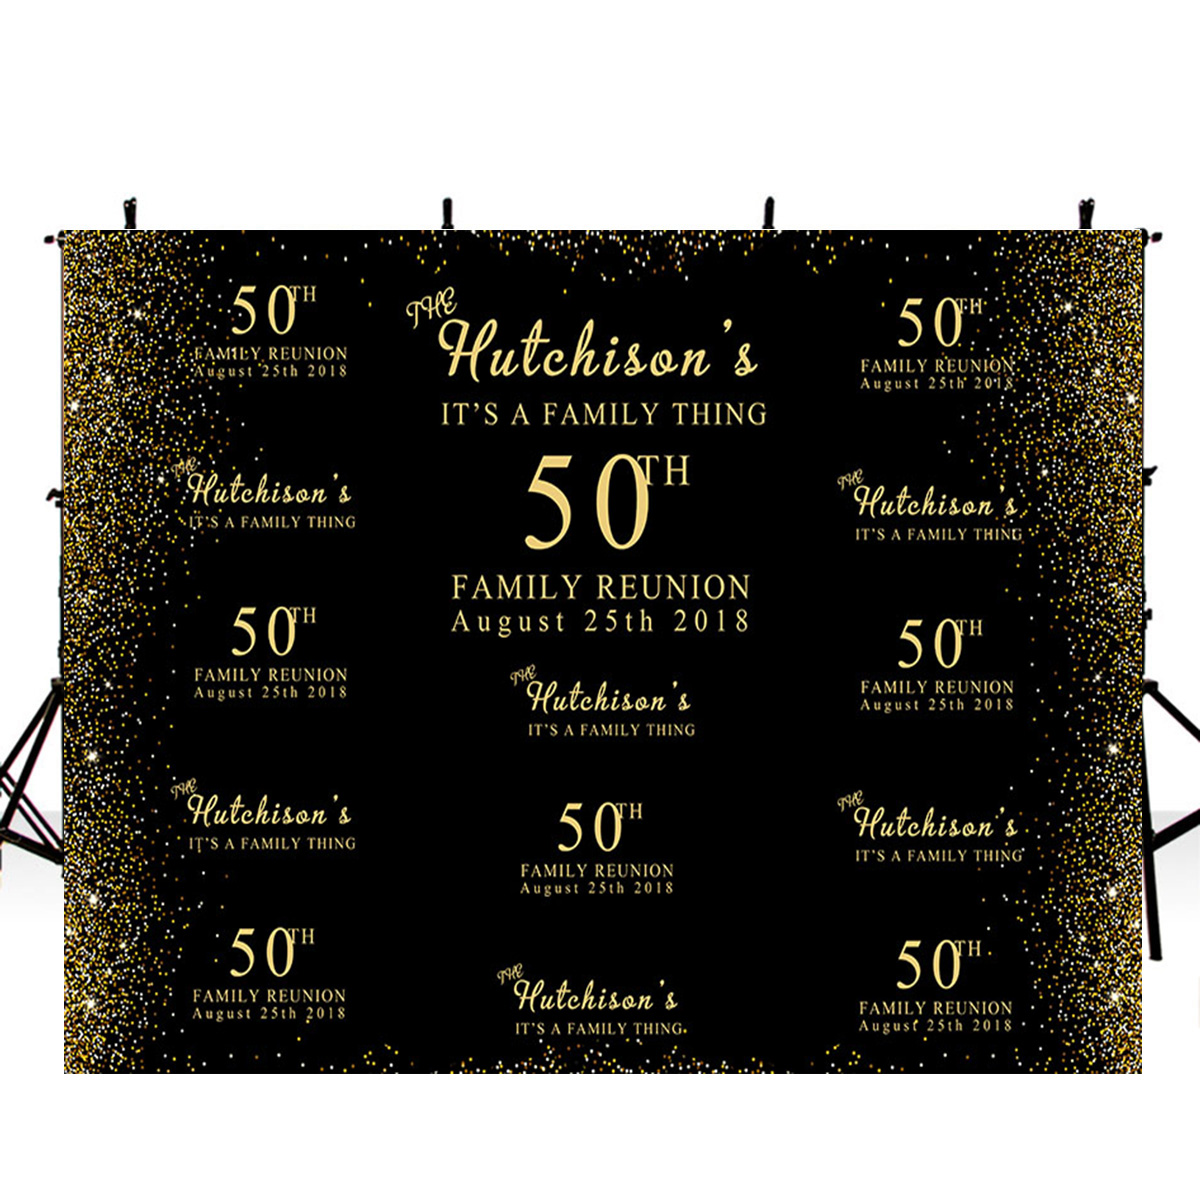 <font><b>Happy</b></font> <font><b>birthday</b></font> <font><b>50th</b></font> photo <font><b>backdrops</b></font> banner photo booth props <font><b>50th</b></font> <font><b>birthday</b></font> photo <font><b>backdrop</b></font> black and gold background for picture image